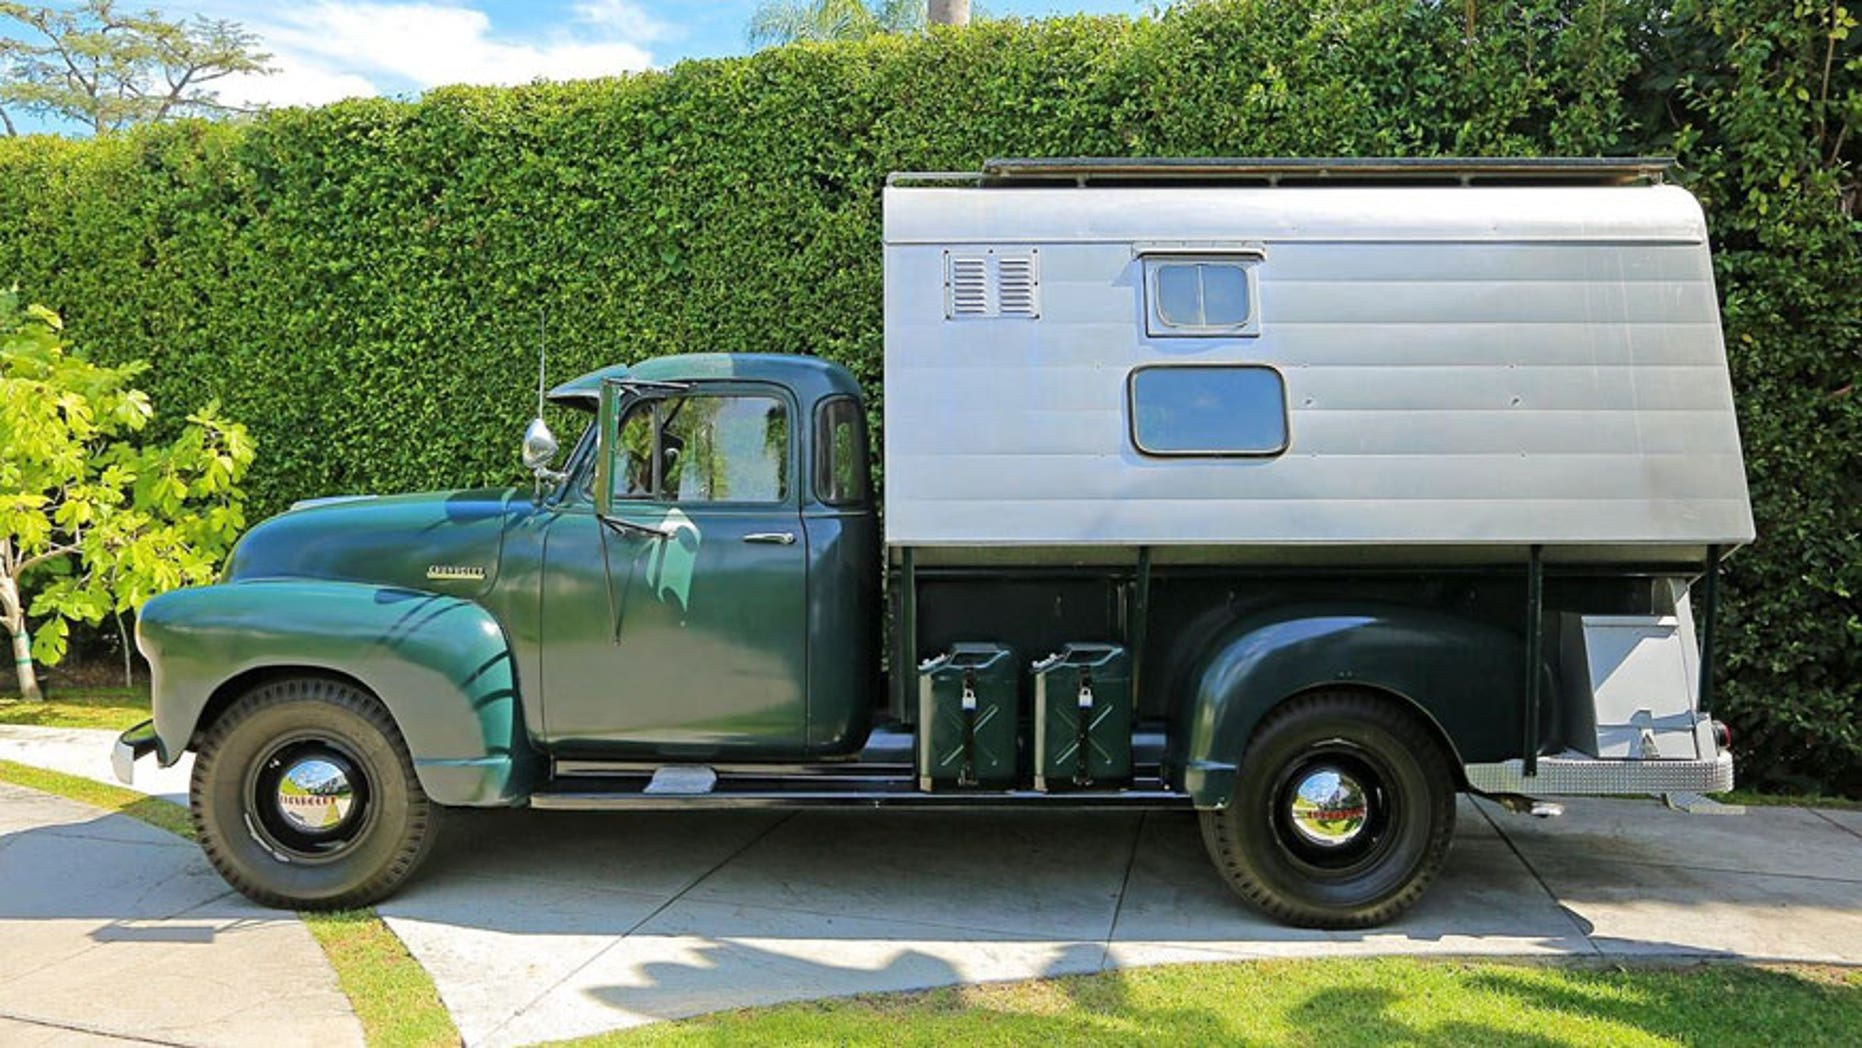 Steve McQueen's 1952 Chevrolet pickup camper being auctioned